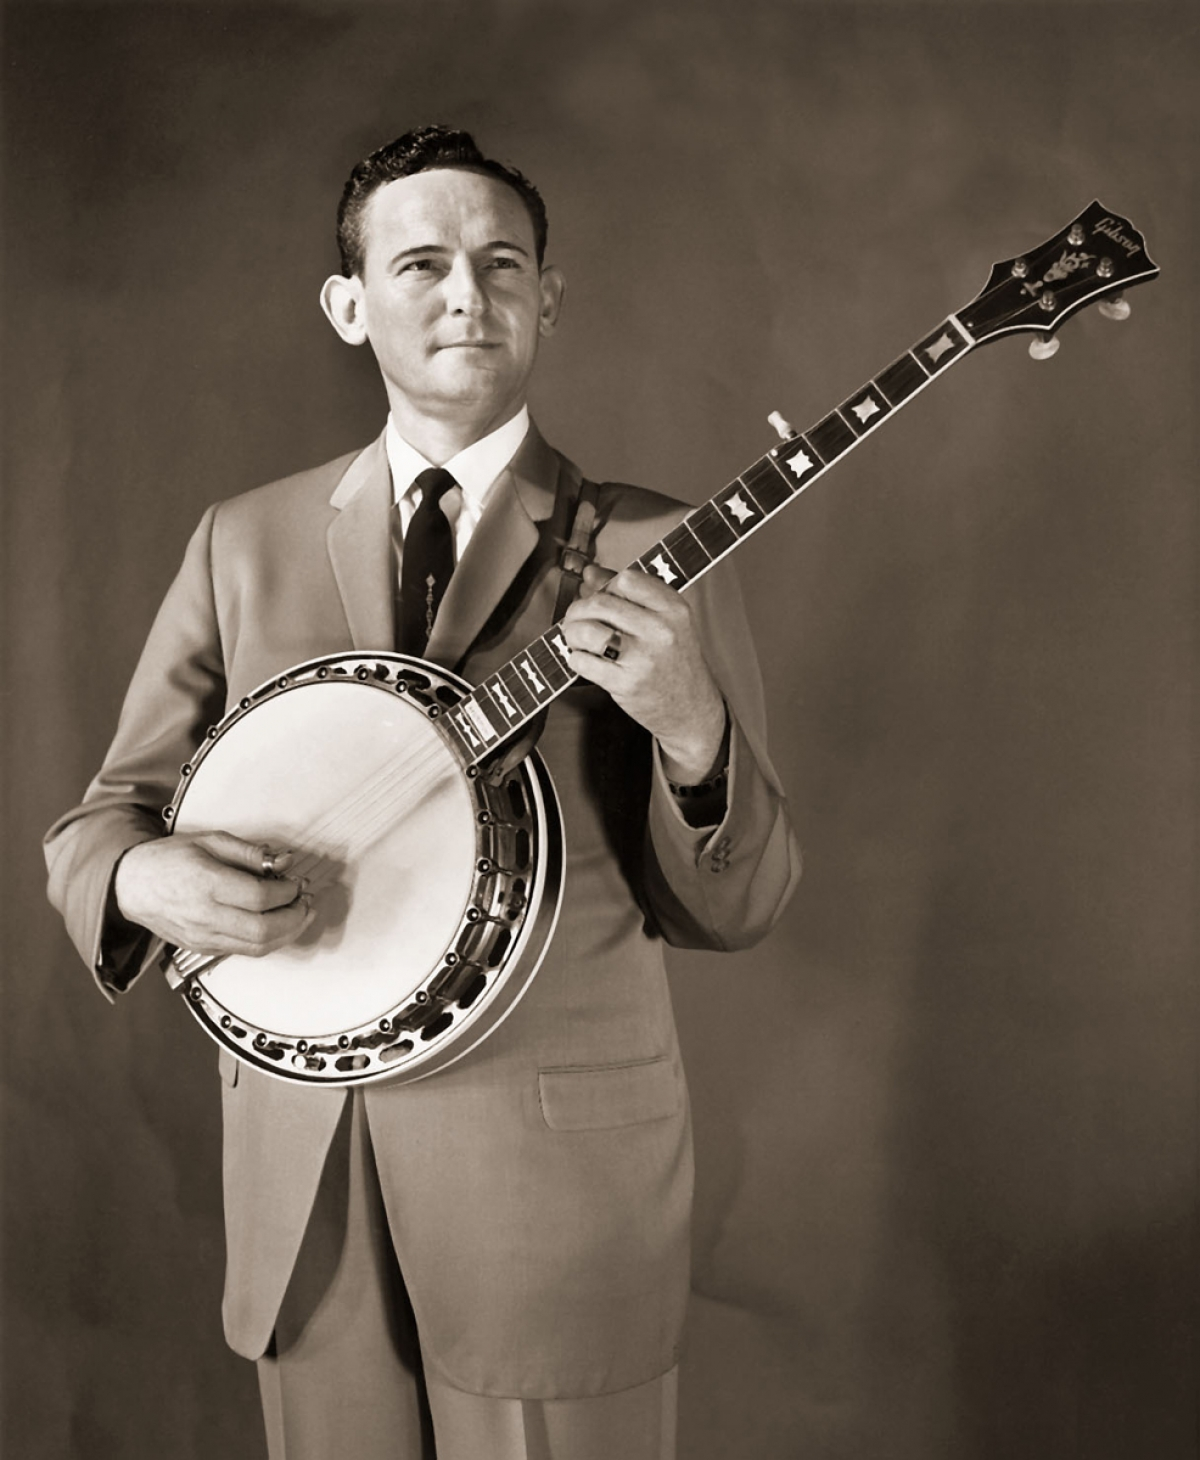 "Born in Spartanburg, SC in 1927, Don Reno was a bluegrass banjo pioneer whose style was widely admired.  In 1948 Reno became a member of Bill Monroe's Bluegrass Boys.  Two years later with Red Smiley, he formed ""Reno and Smiley and the Tennessee Cutups"", a partnership that lasted fourteen years and recorded over 100 influential albums.  In 1964, after the retirement of Red Smiley, Reno and guitarist Bill Harrell formed ""Reno and Harrell"" followed by a solo career that lasted until his death in 1984.  Reno accompanied Arthur Smith on Smith's well-known recording of ""Feuding Banjos""."